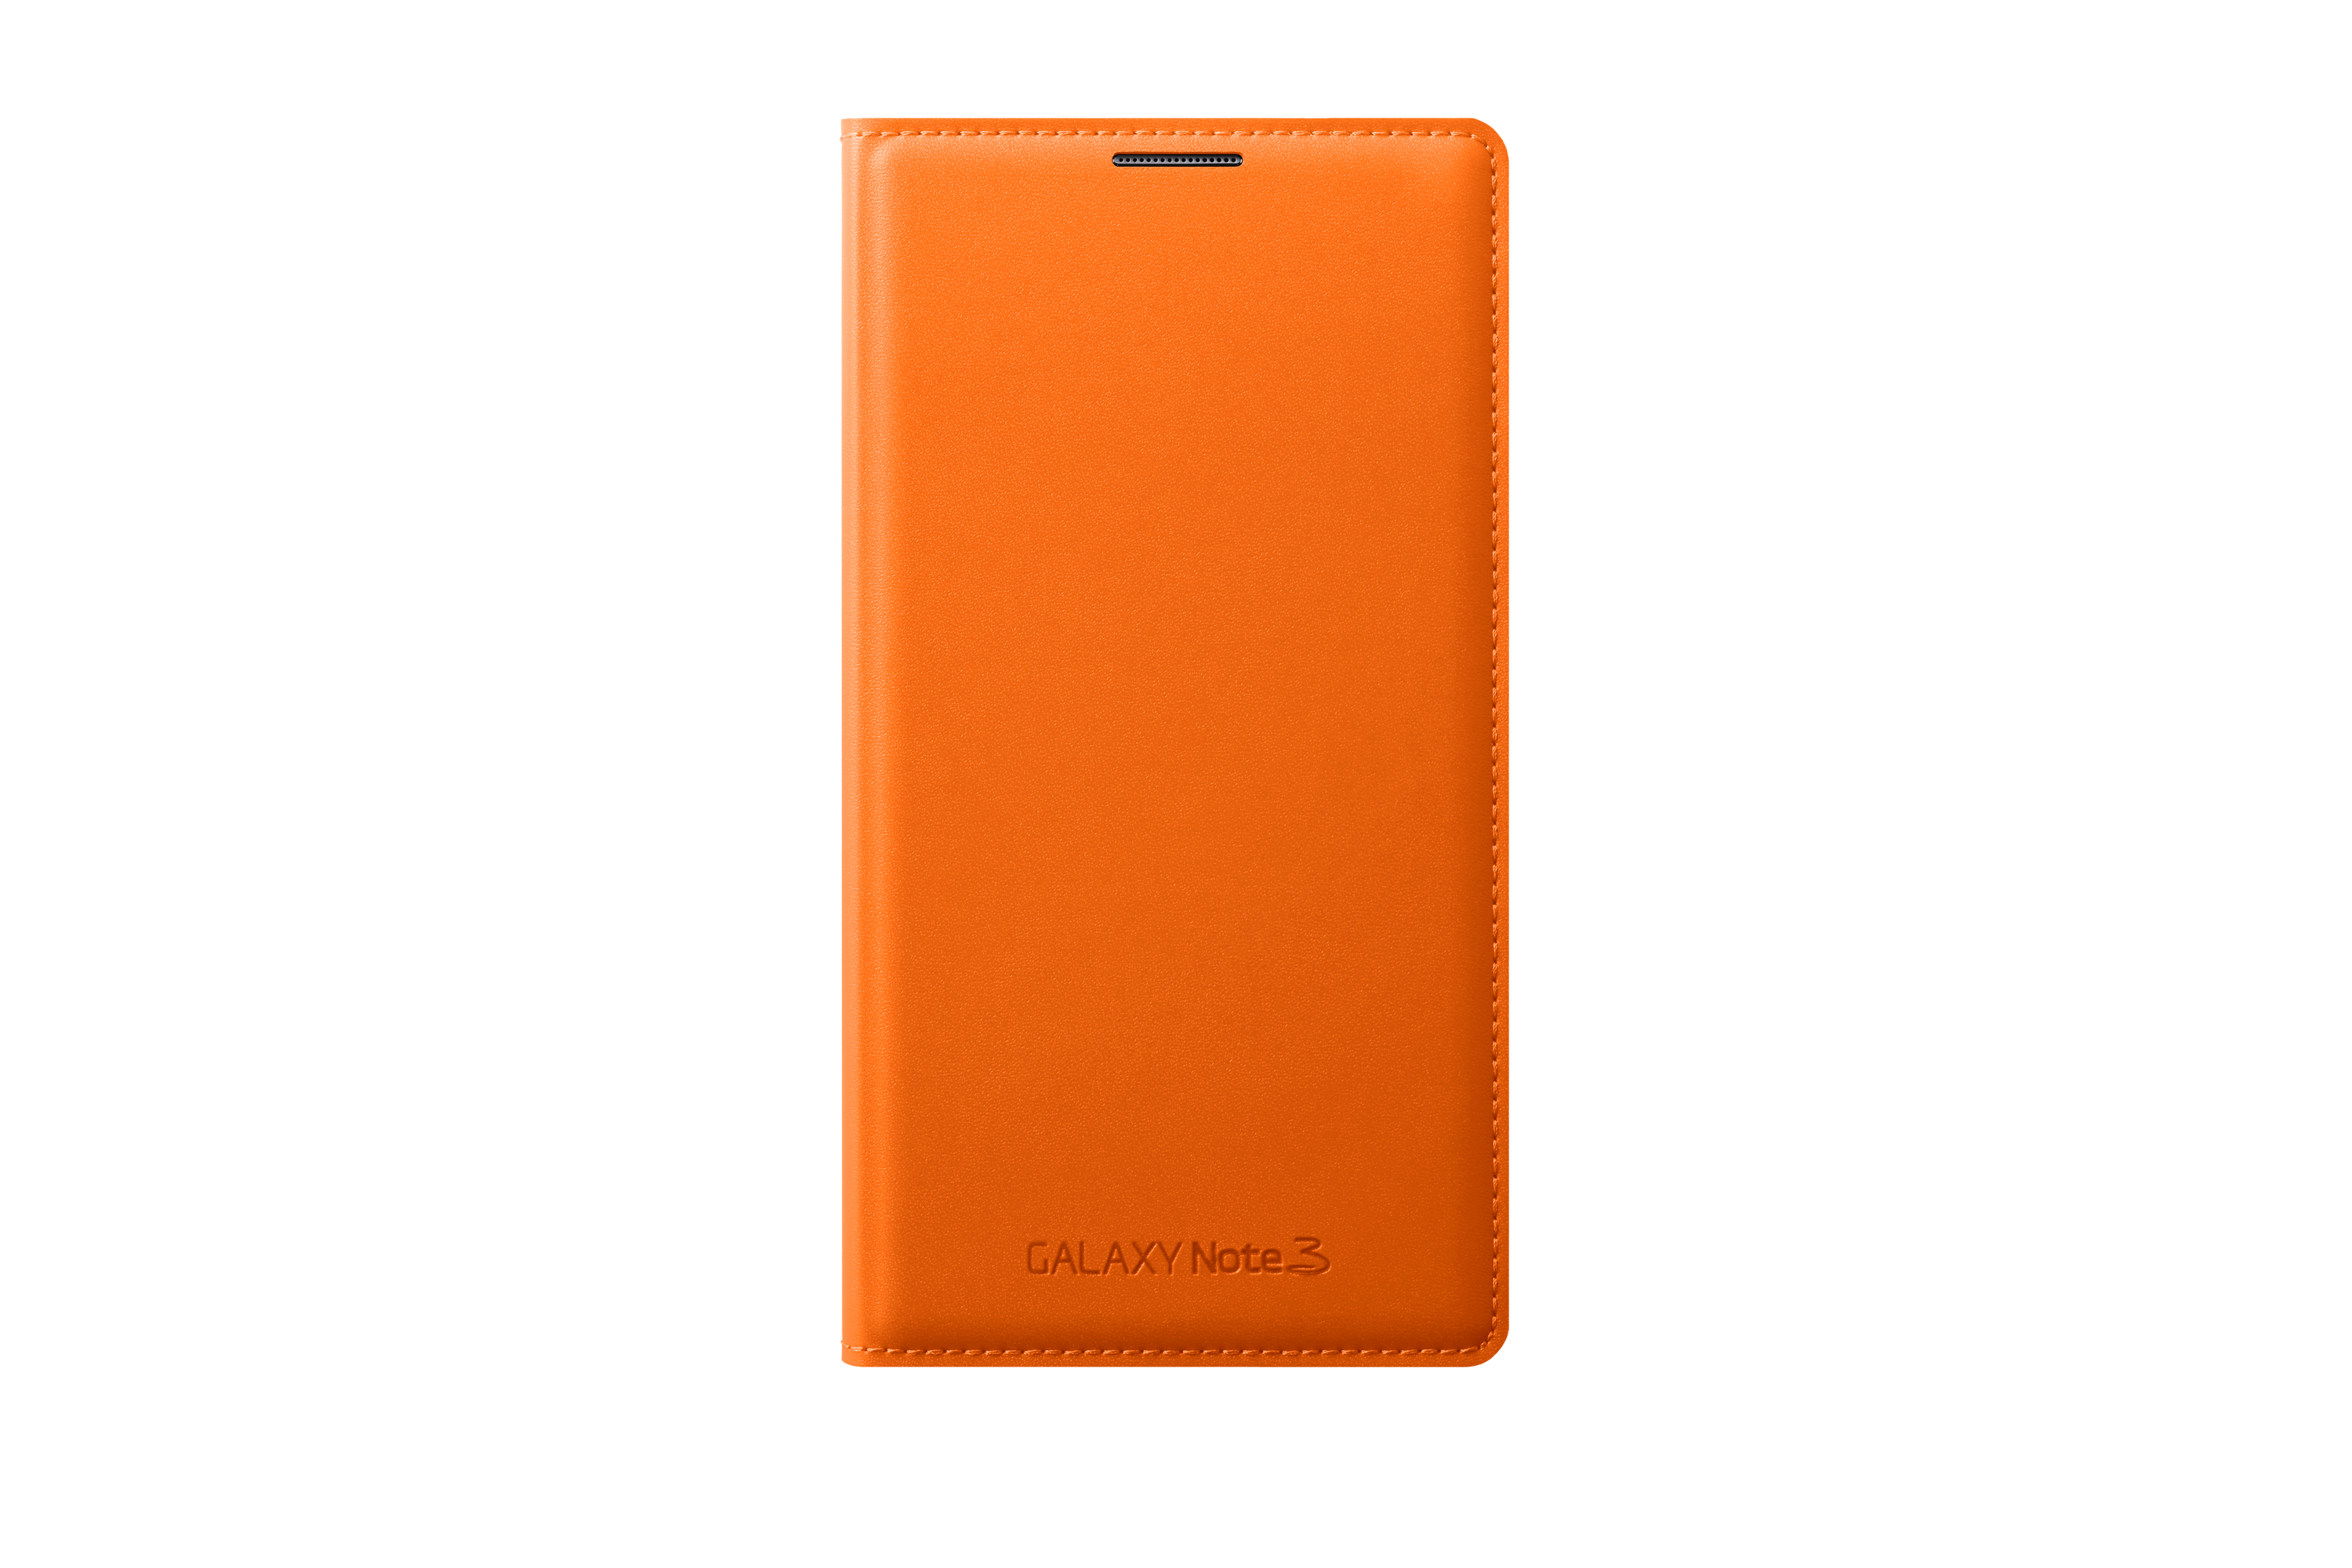 Wallet Cover (Galaxy Note 3)